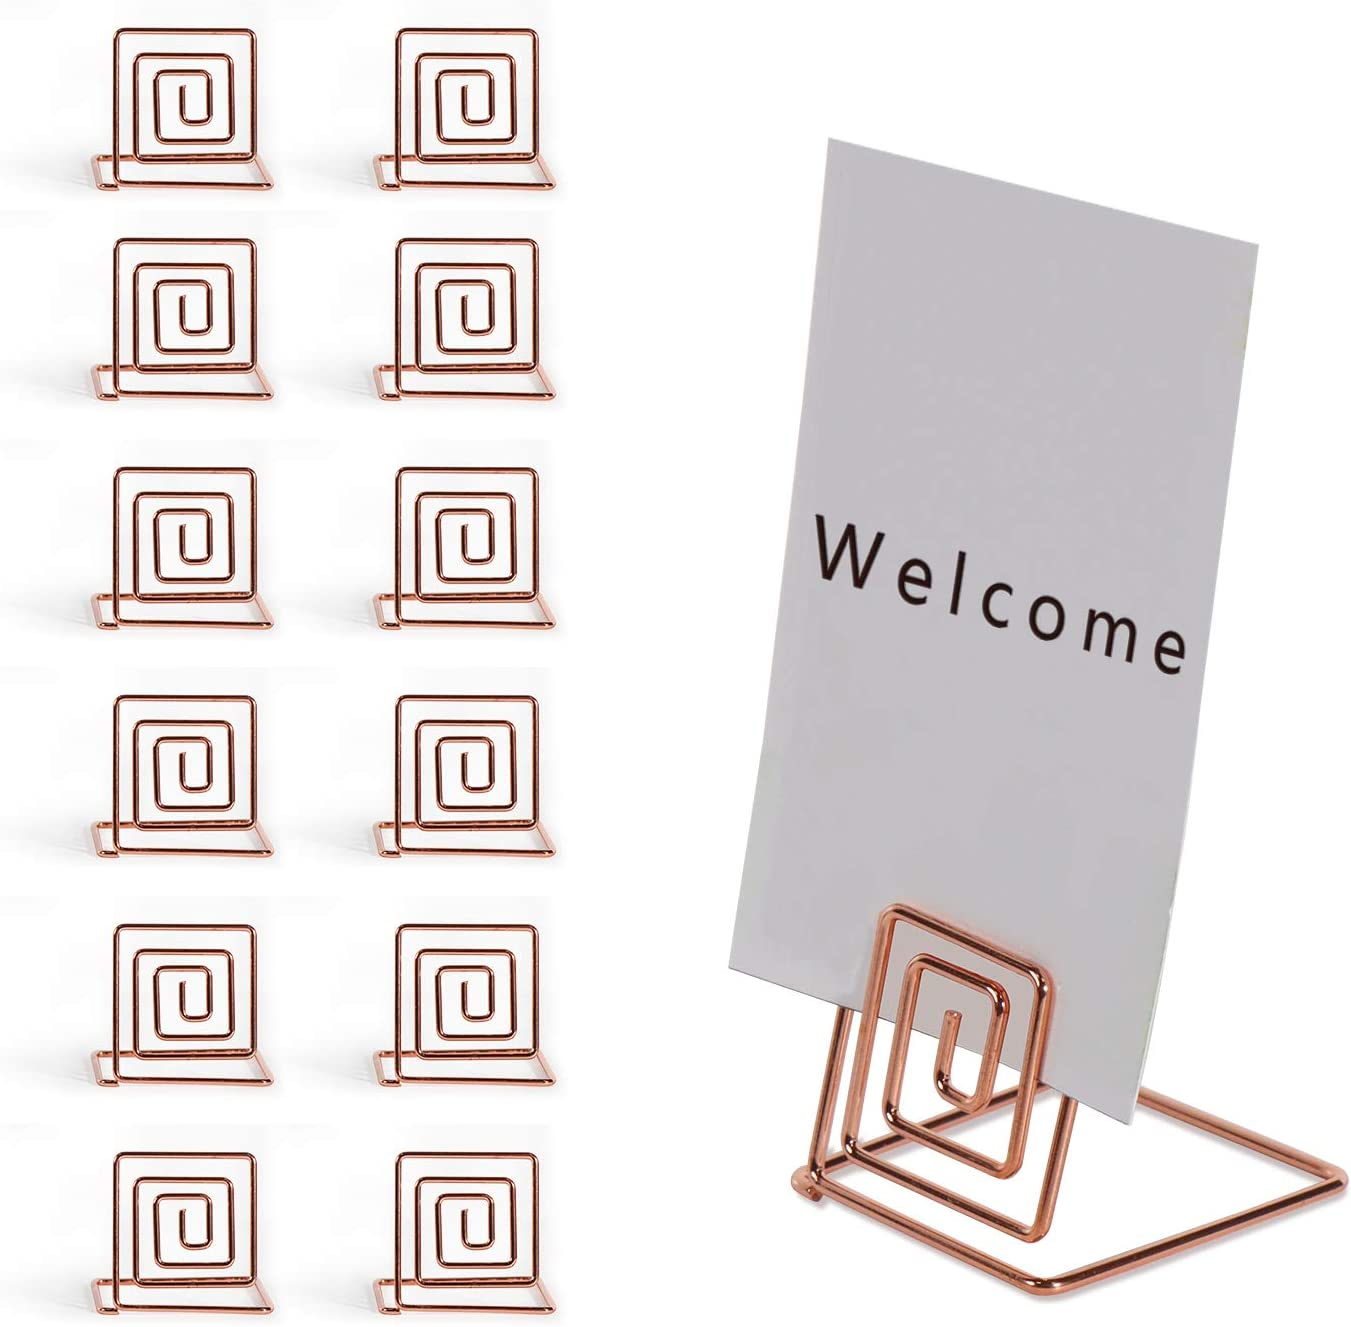 RALIS 12PCS Premium Place Card Holder-Rose Gold Metal Wire Square Table Stand Number Holder-Used for Photos-Food Signs-Memos-Weddings& Restaurants&Birthdays-Suitable for Party Table Decoration